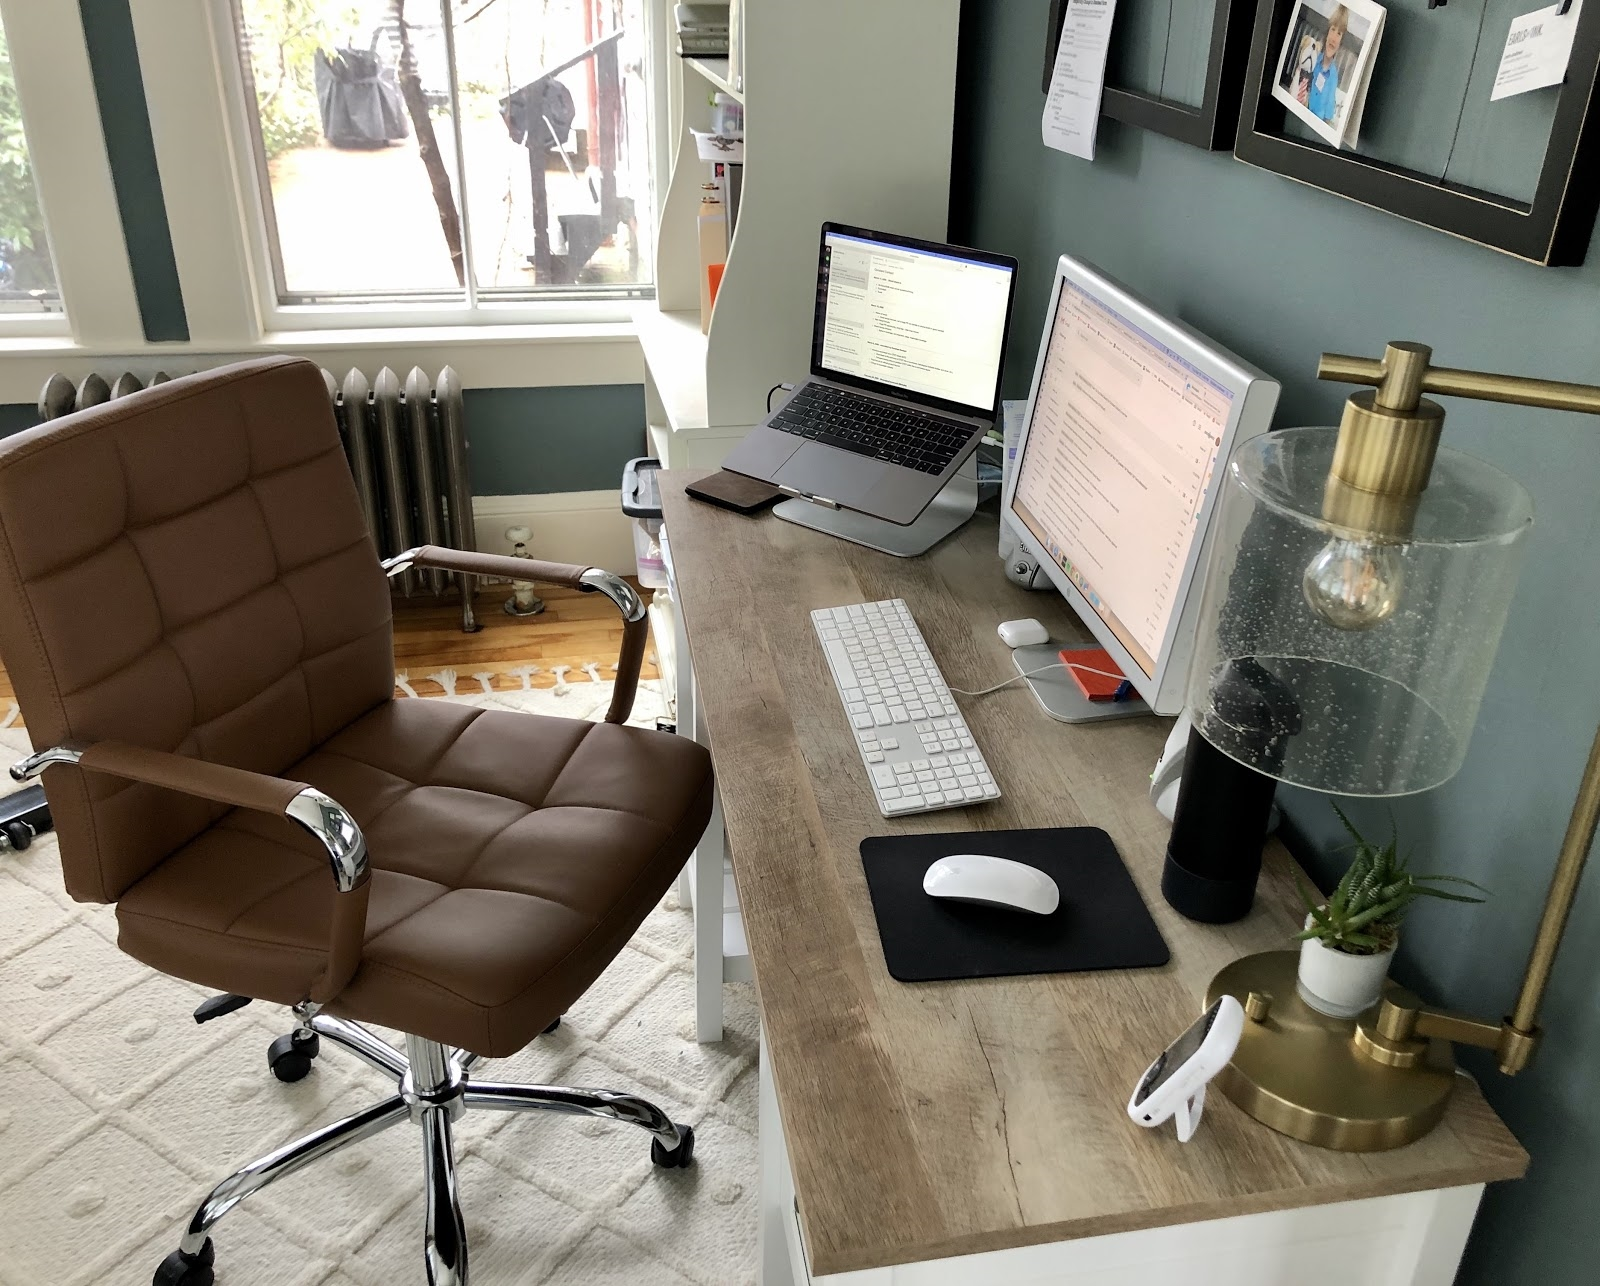 How to Stay Productive (and Sane) While Working from Home